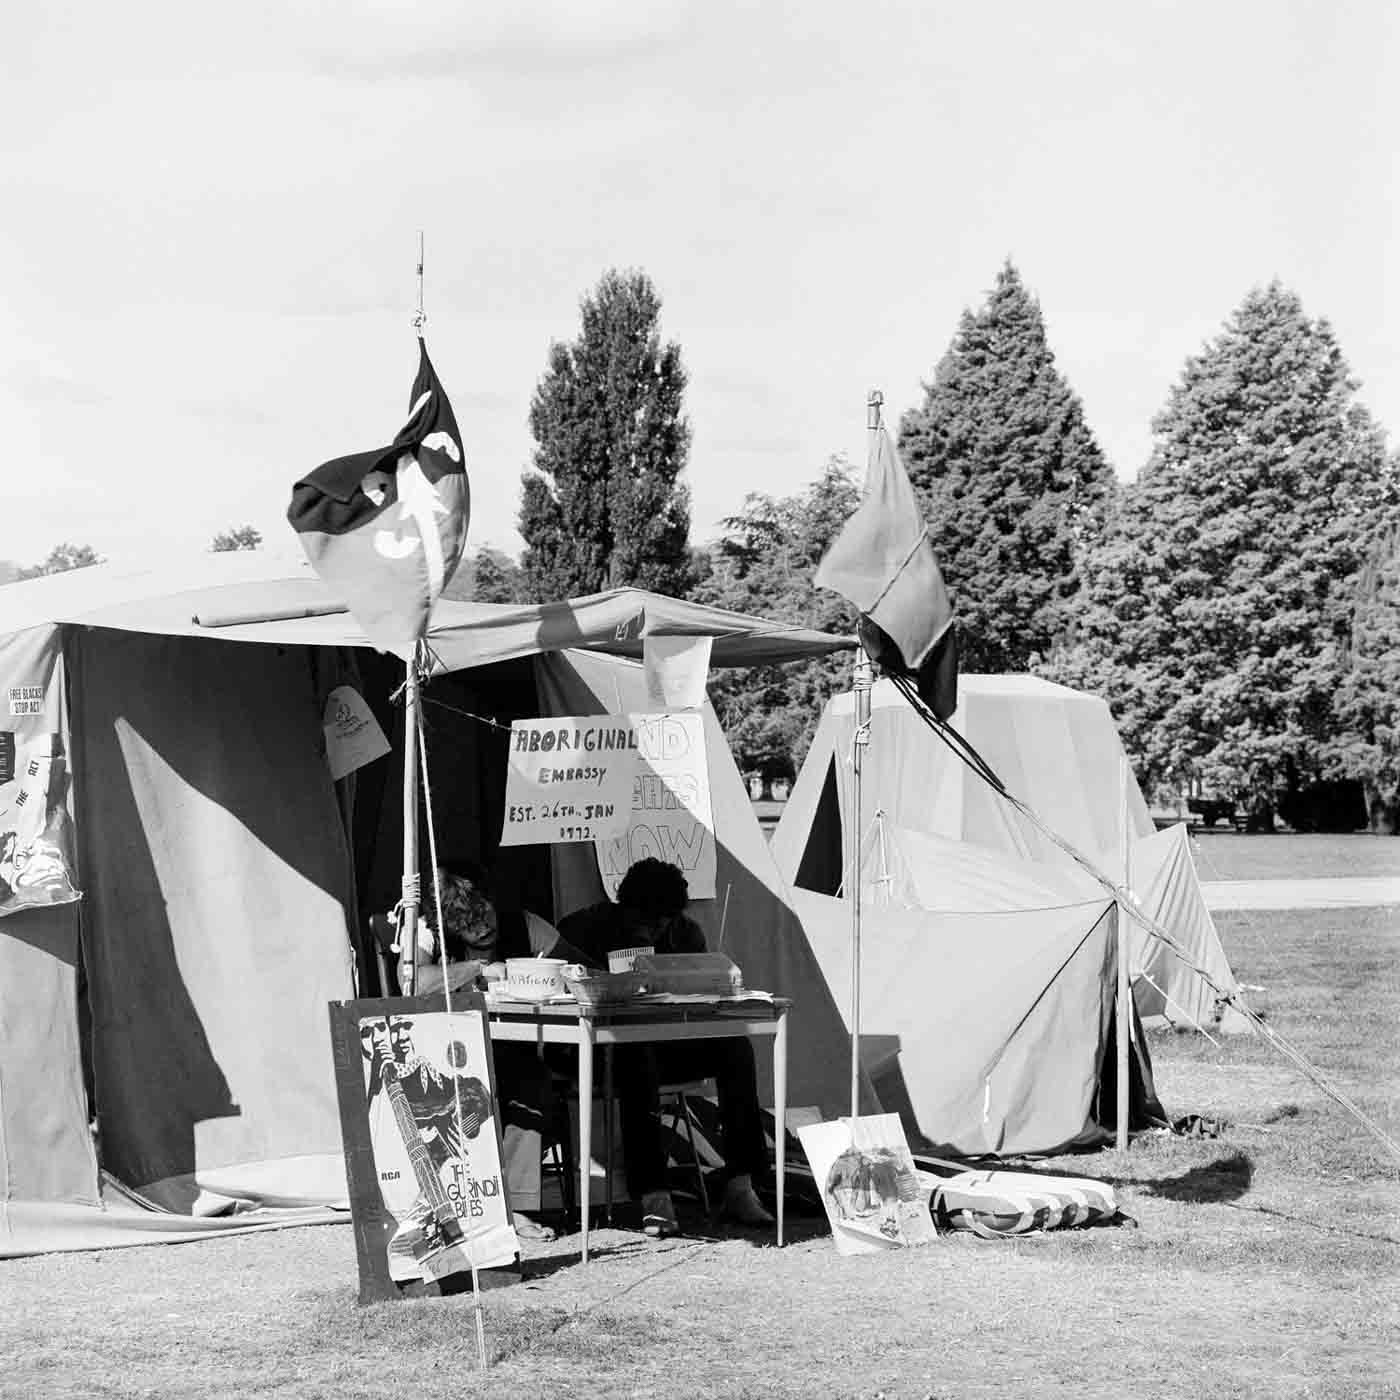 Black and white photo of a two men sitting at a table in front of a tent. There are flags out the front and various protest signs fixed to the tent.